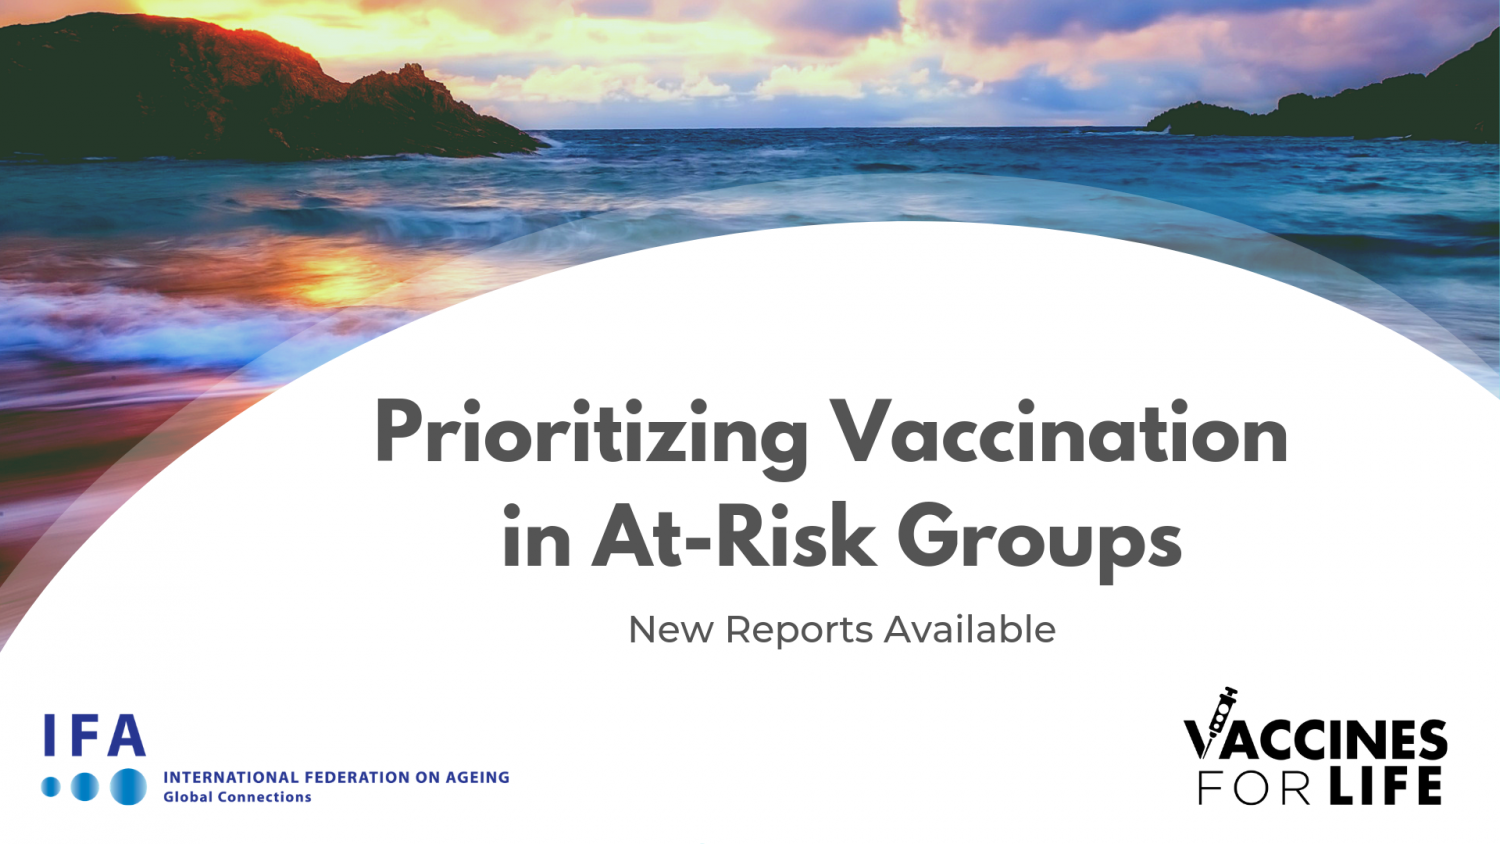 Prioritizing Vaccination in At-Risk Groups